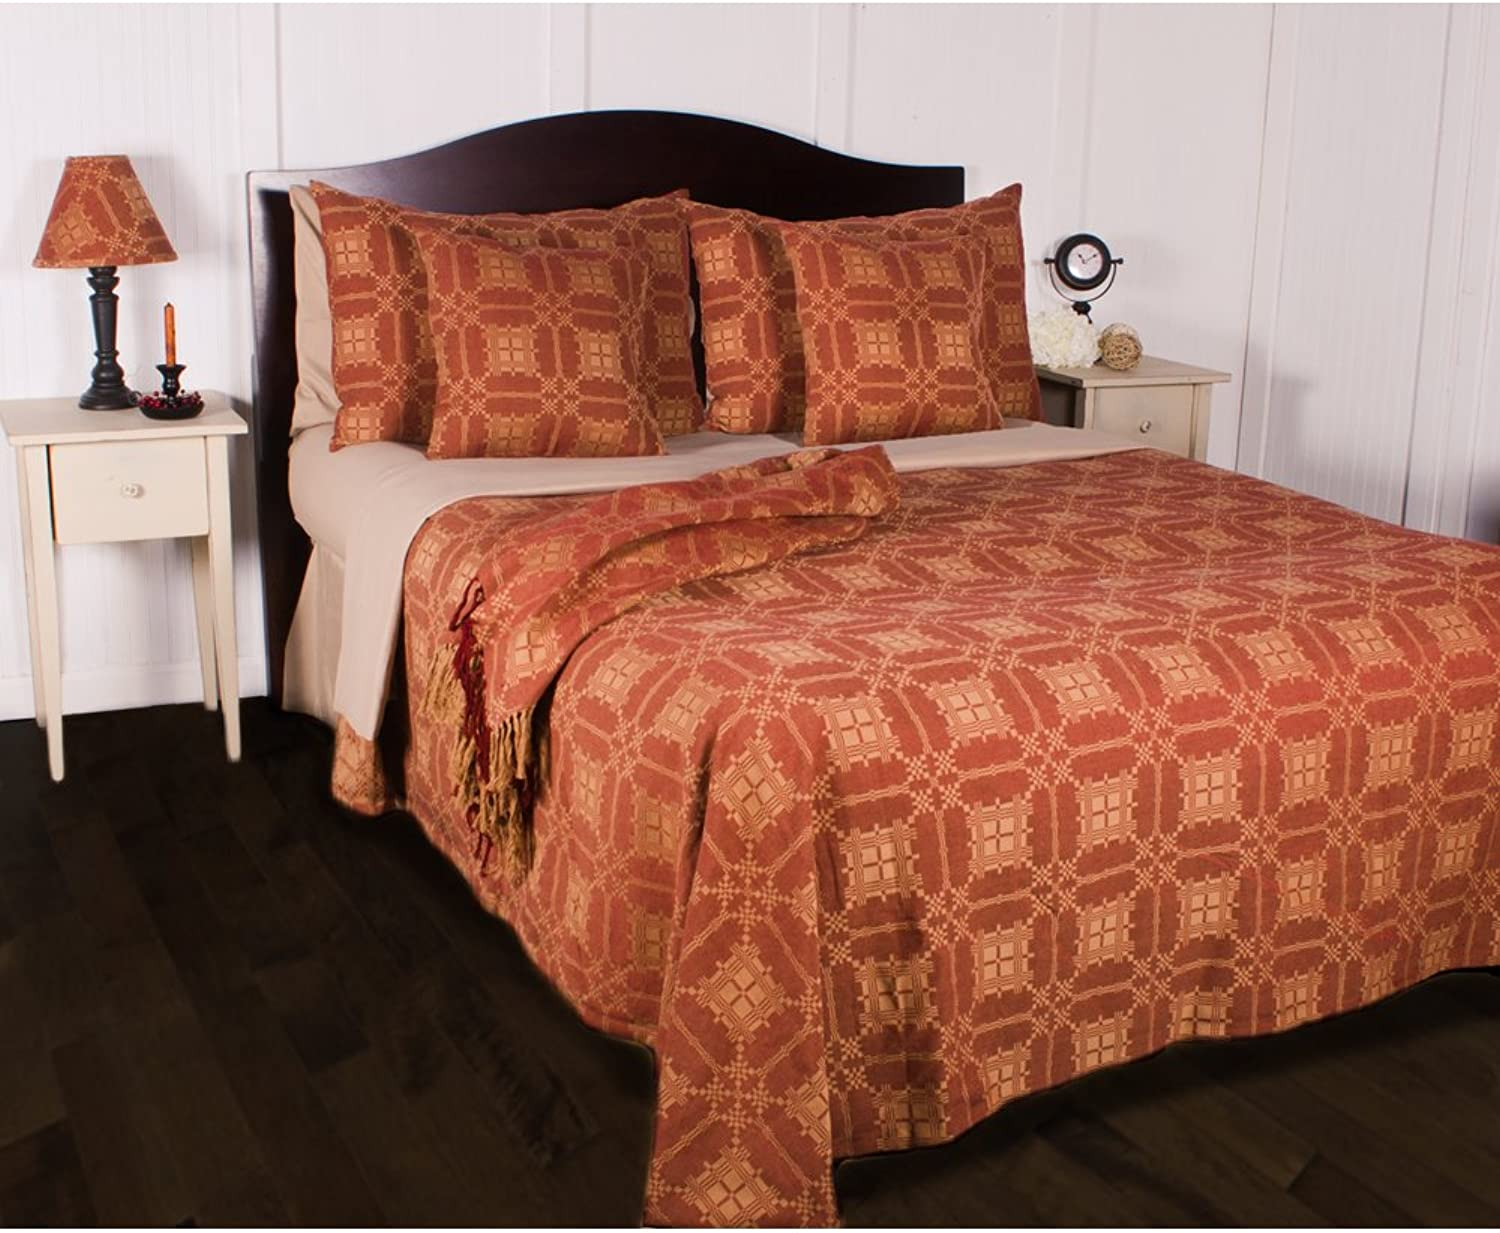 Home Collections by Raghu Smithfield Jacquard Bedcover King Barn Red, Nutmeg